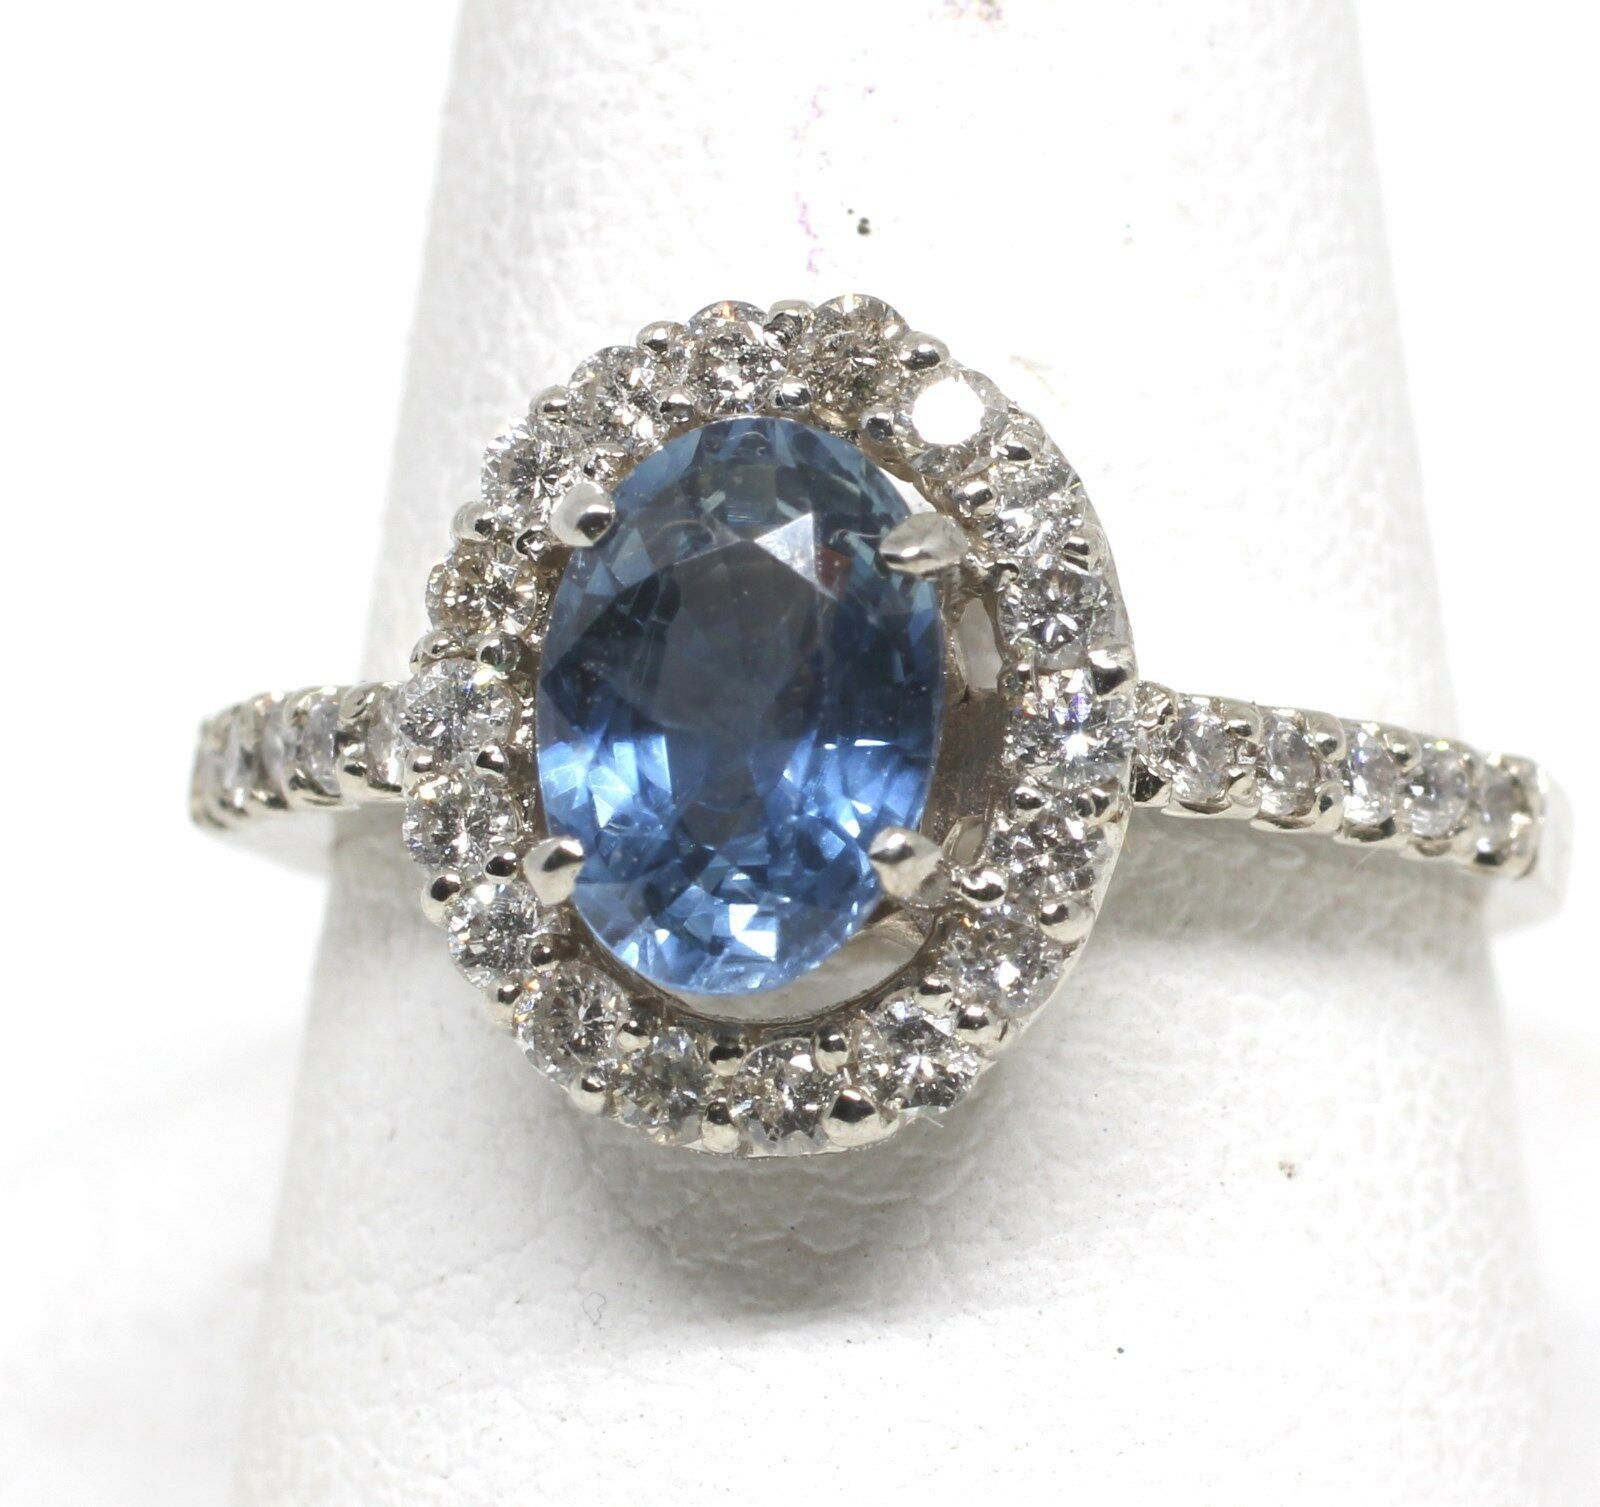 bluee sapphire surrounded by diamonds 14kw gold size 6